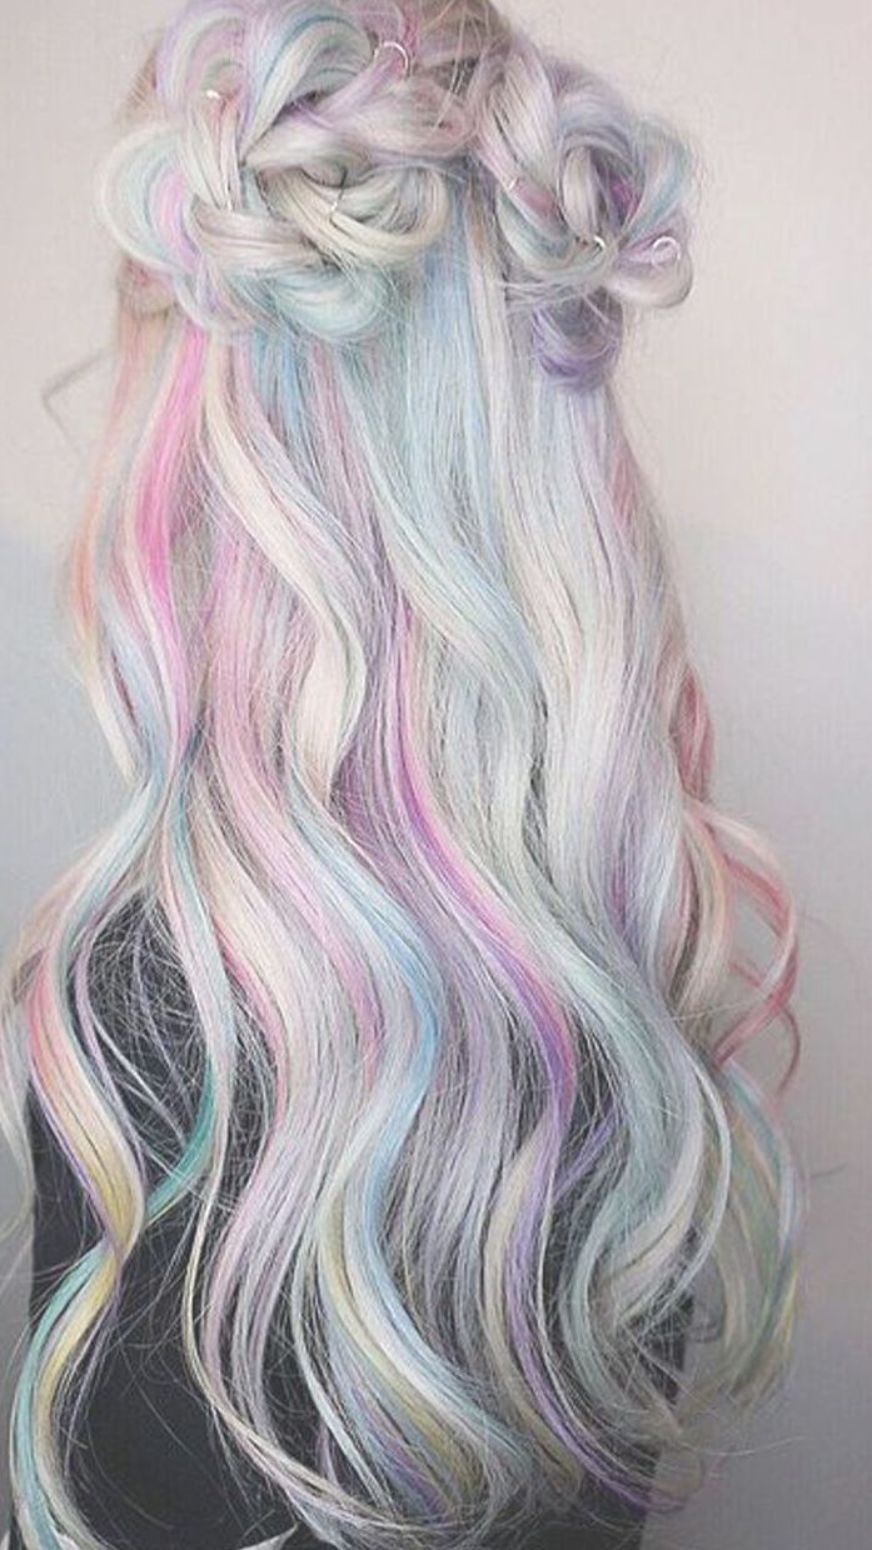 As though colorful beams of light were caressing your hair, this